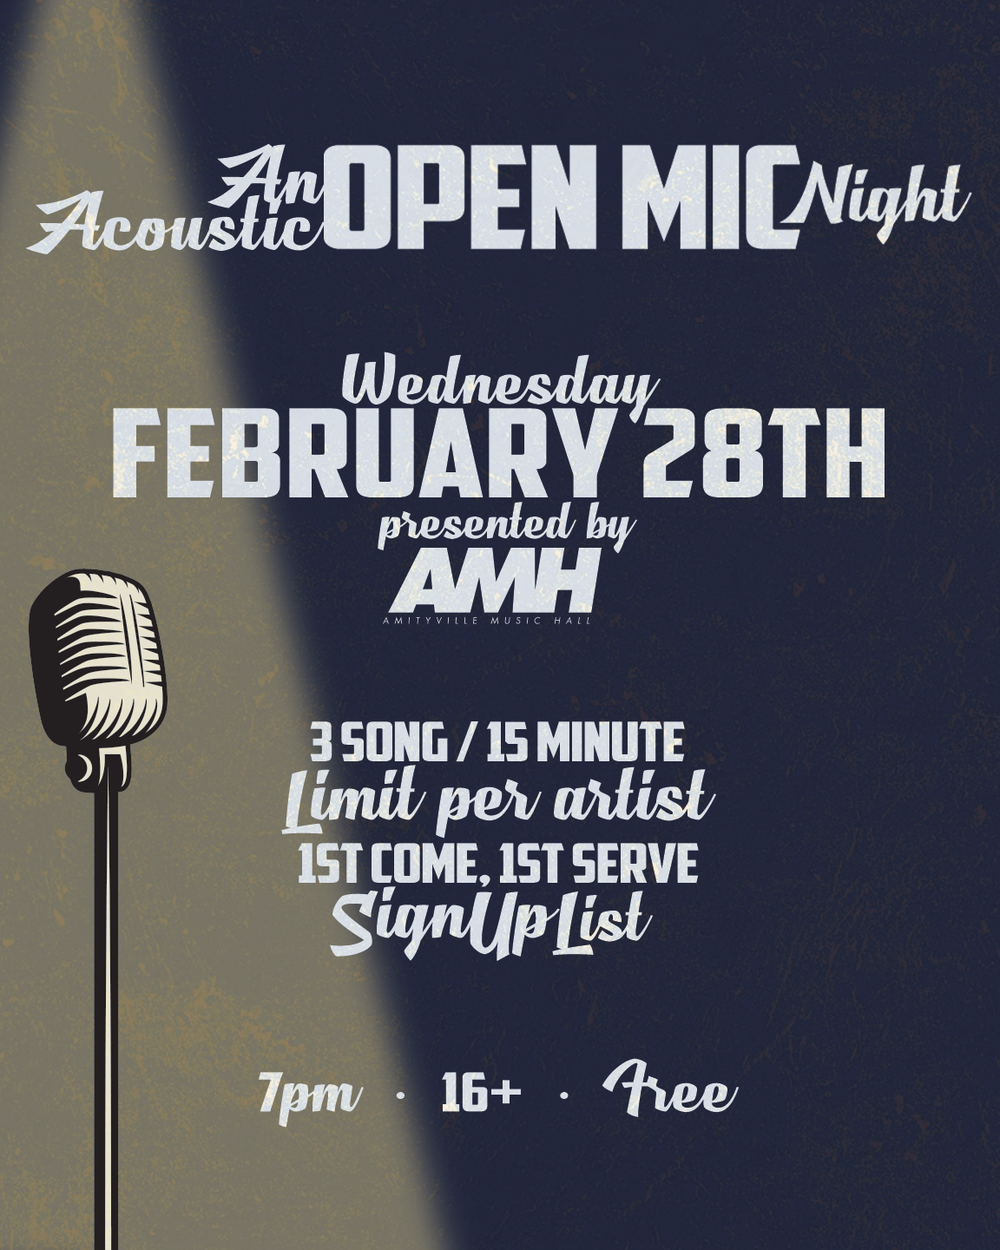 An Acoustic Open Mic - 3 Song Limit / 15 Minute Limit Per Artist / 1st Comes 1st Serve Sign Up List FREE16+ w/ ID